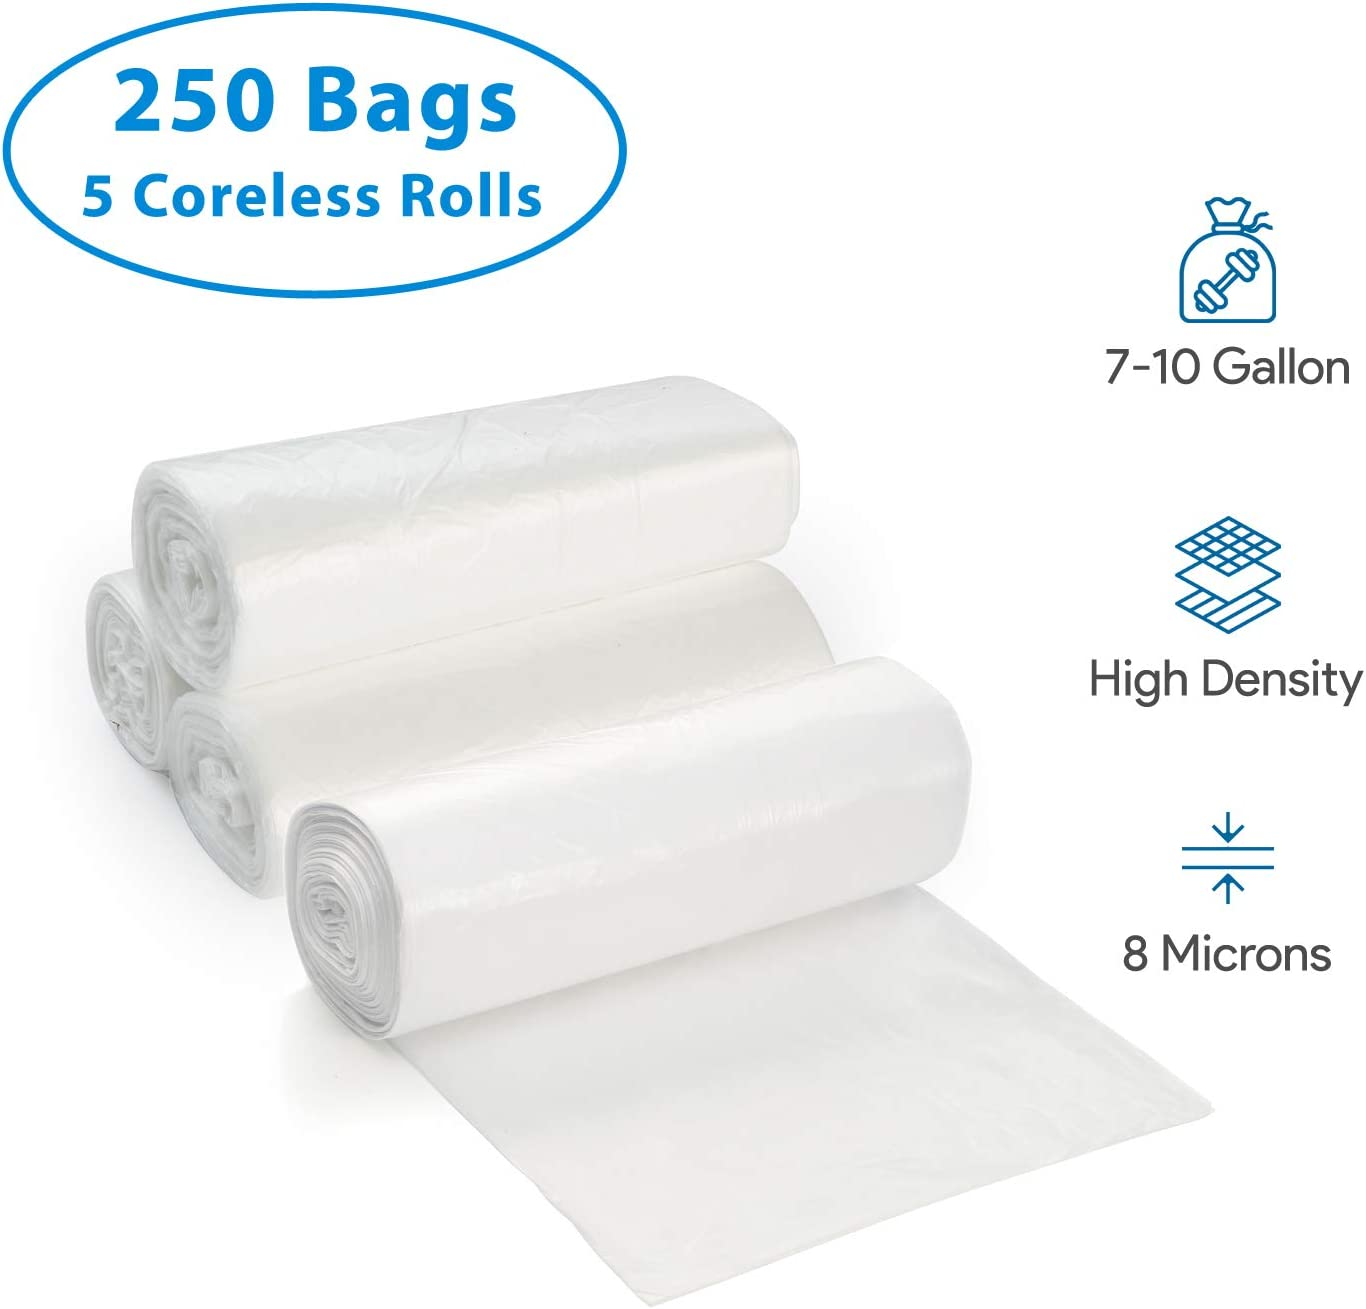 For Office Industrial Wastebaskets 250 Count 7-10 Gallon Clear Trash Bags Small 5 Coreless Rolls Home High Density 8 Microns Medium Garbage Can Liners Hospital Lightweight